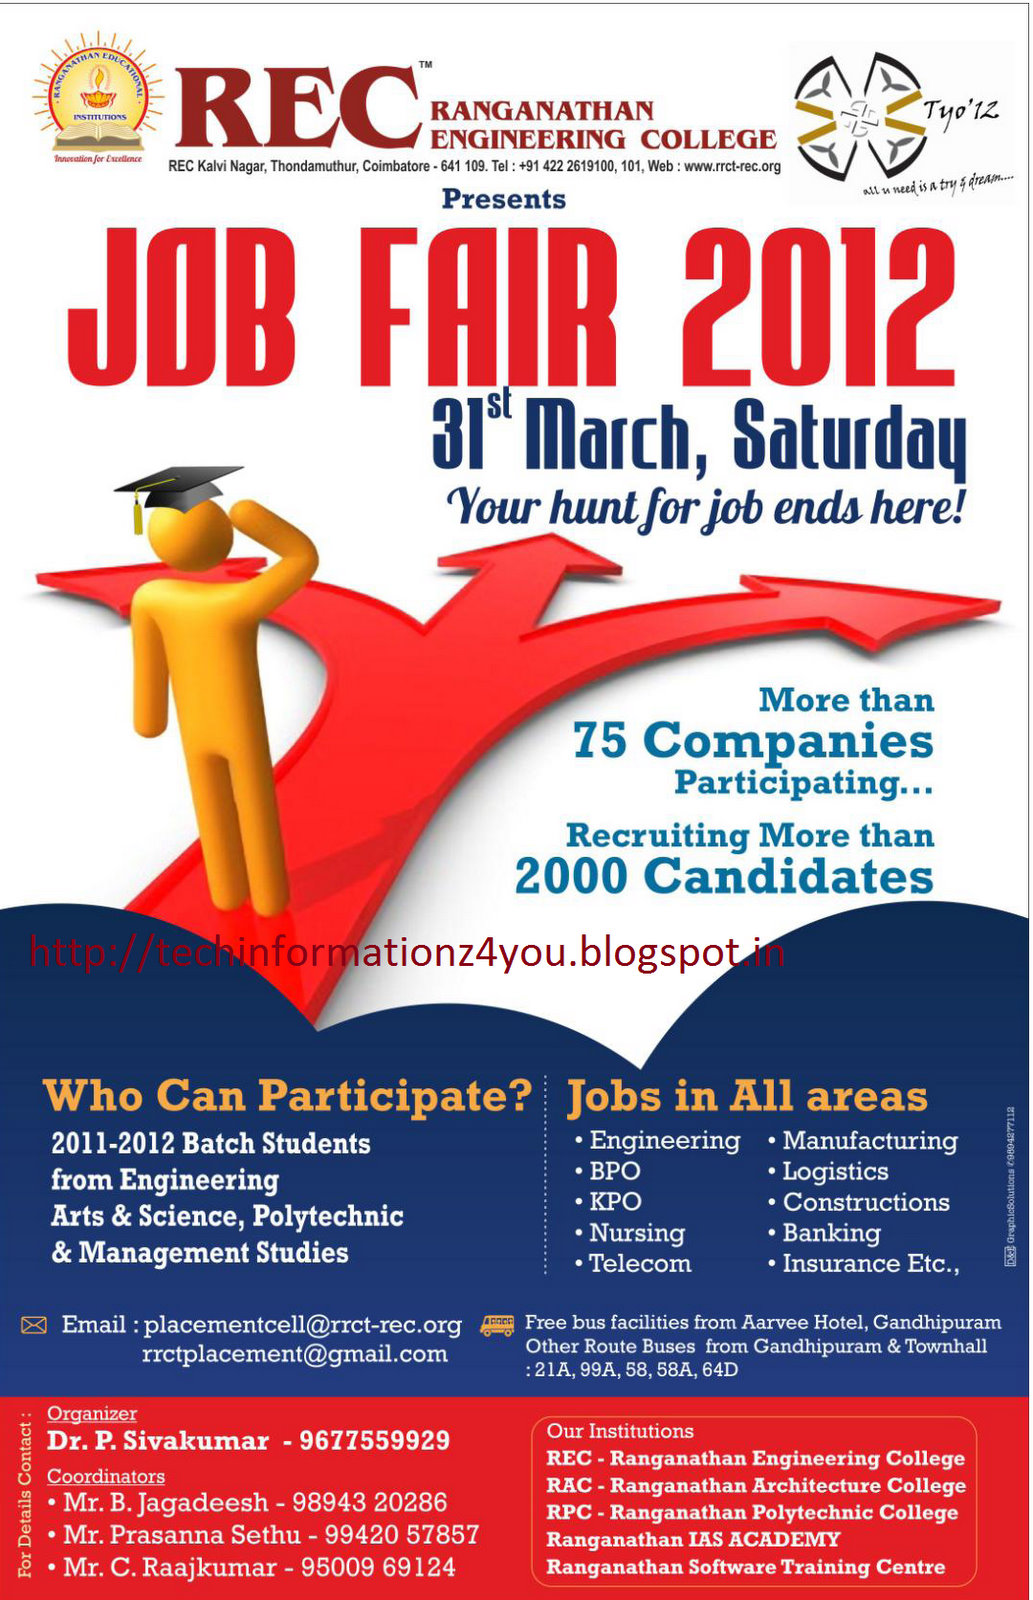 ranganathan engineering college organize rec job fair tyo 12 for rh techinformationz4you blogspot com Yazaki Wire Harness Yazaki UltiPro